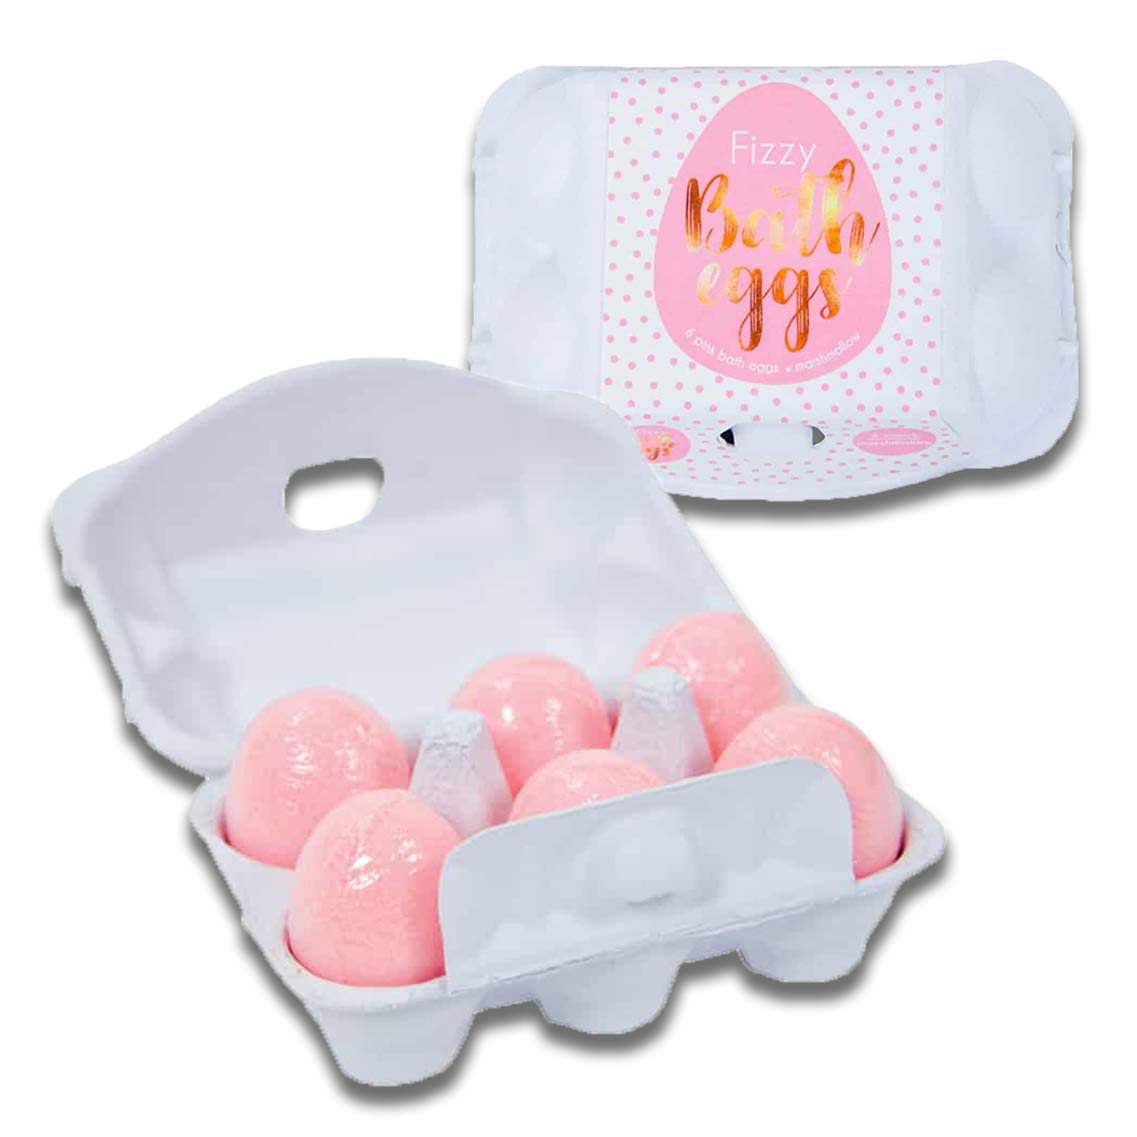 Pink Fizzy Bath Bomb Eggs Scent Marshmallow | The Design Gift Shop